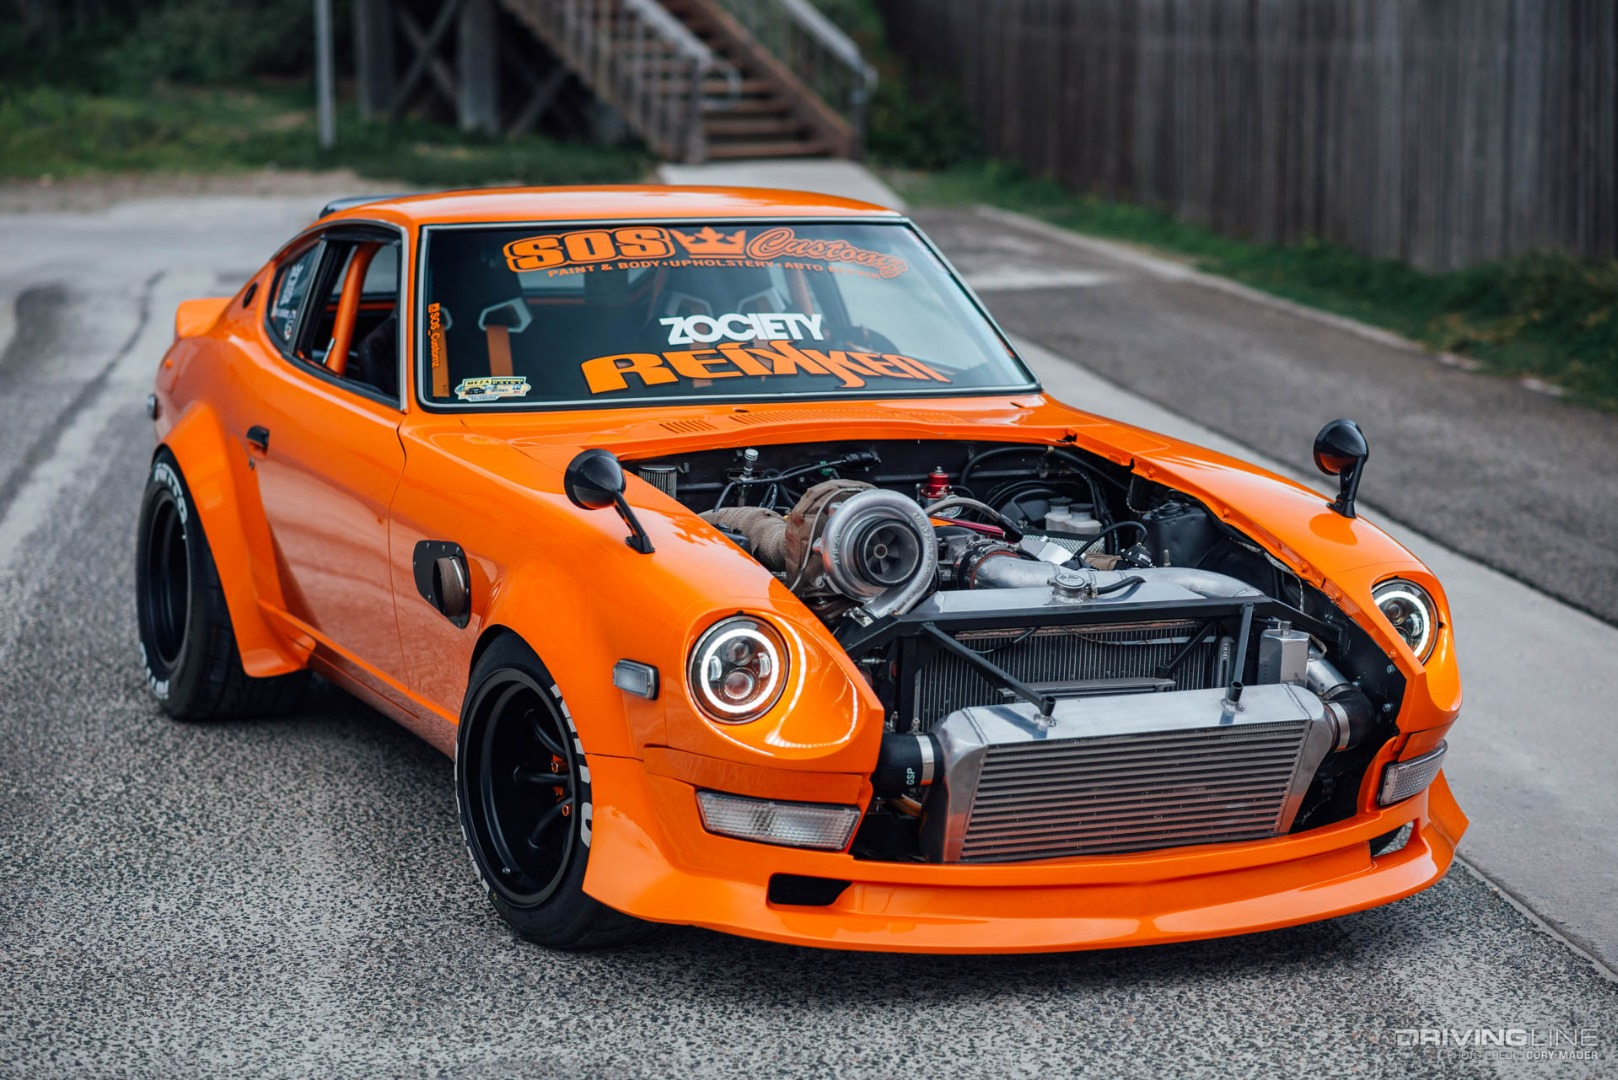 Shooting Star: An LS Swapped 240Z That's Burning Brightly ...